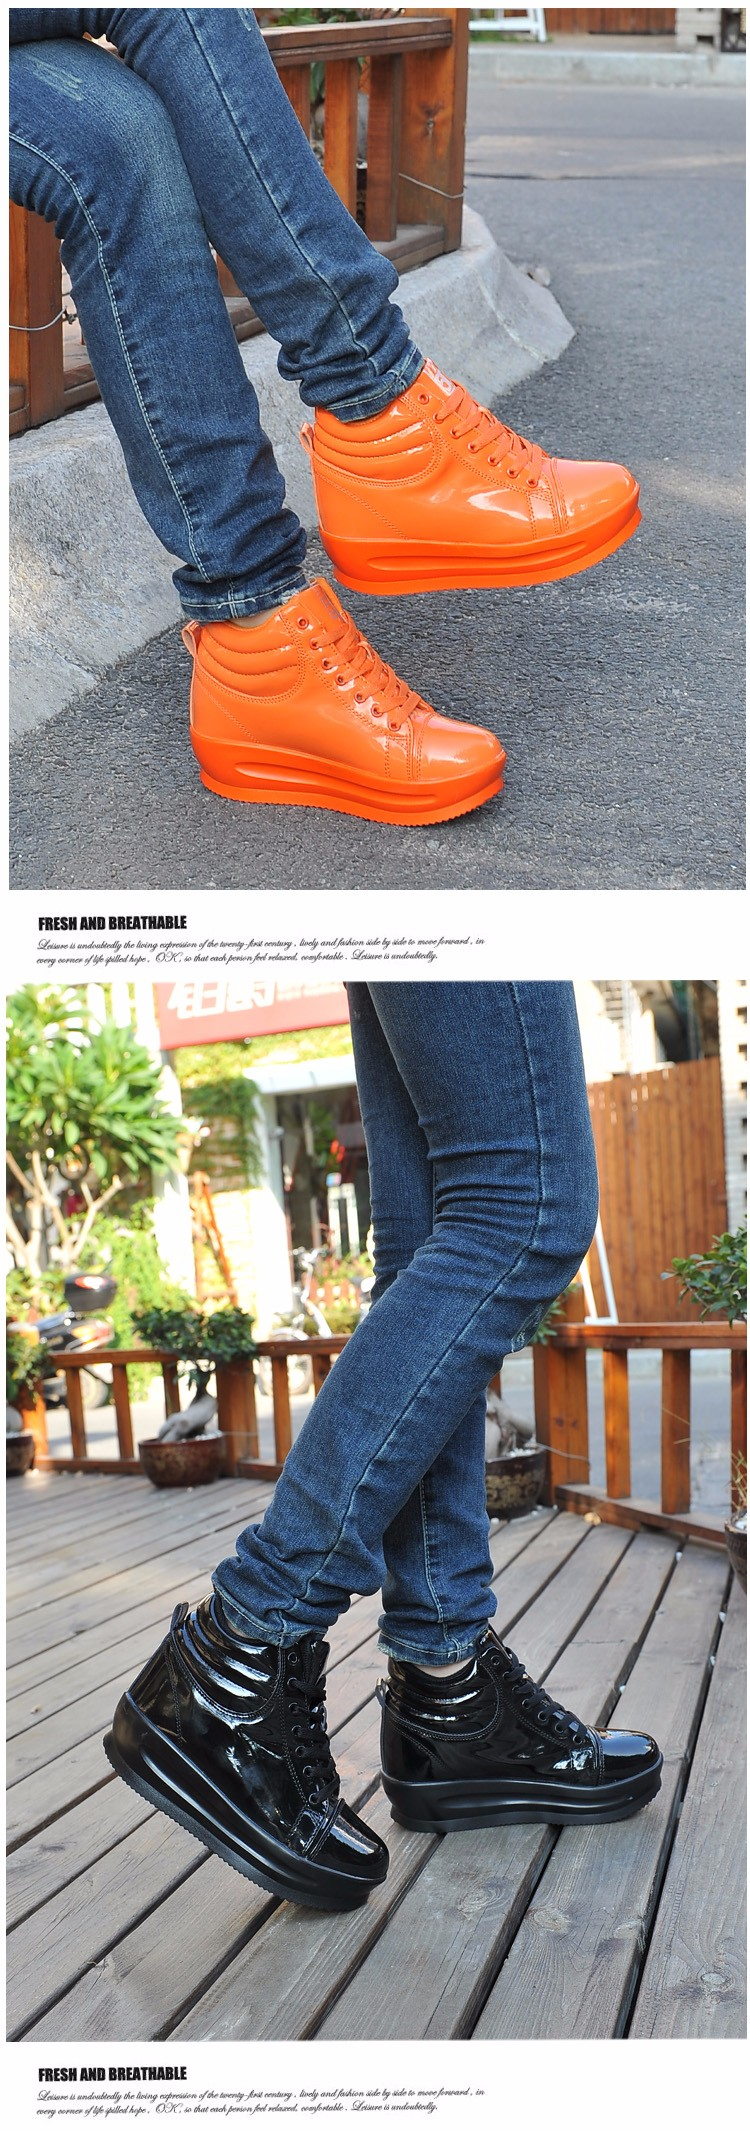 KUYUPP 2016 Fashion Hide Heel Women Casual Shoes Breathable Flat Platform Casual Women Shoes Patent Leather High Top Shoes YD105 (6)